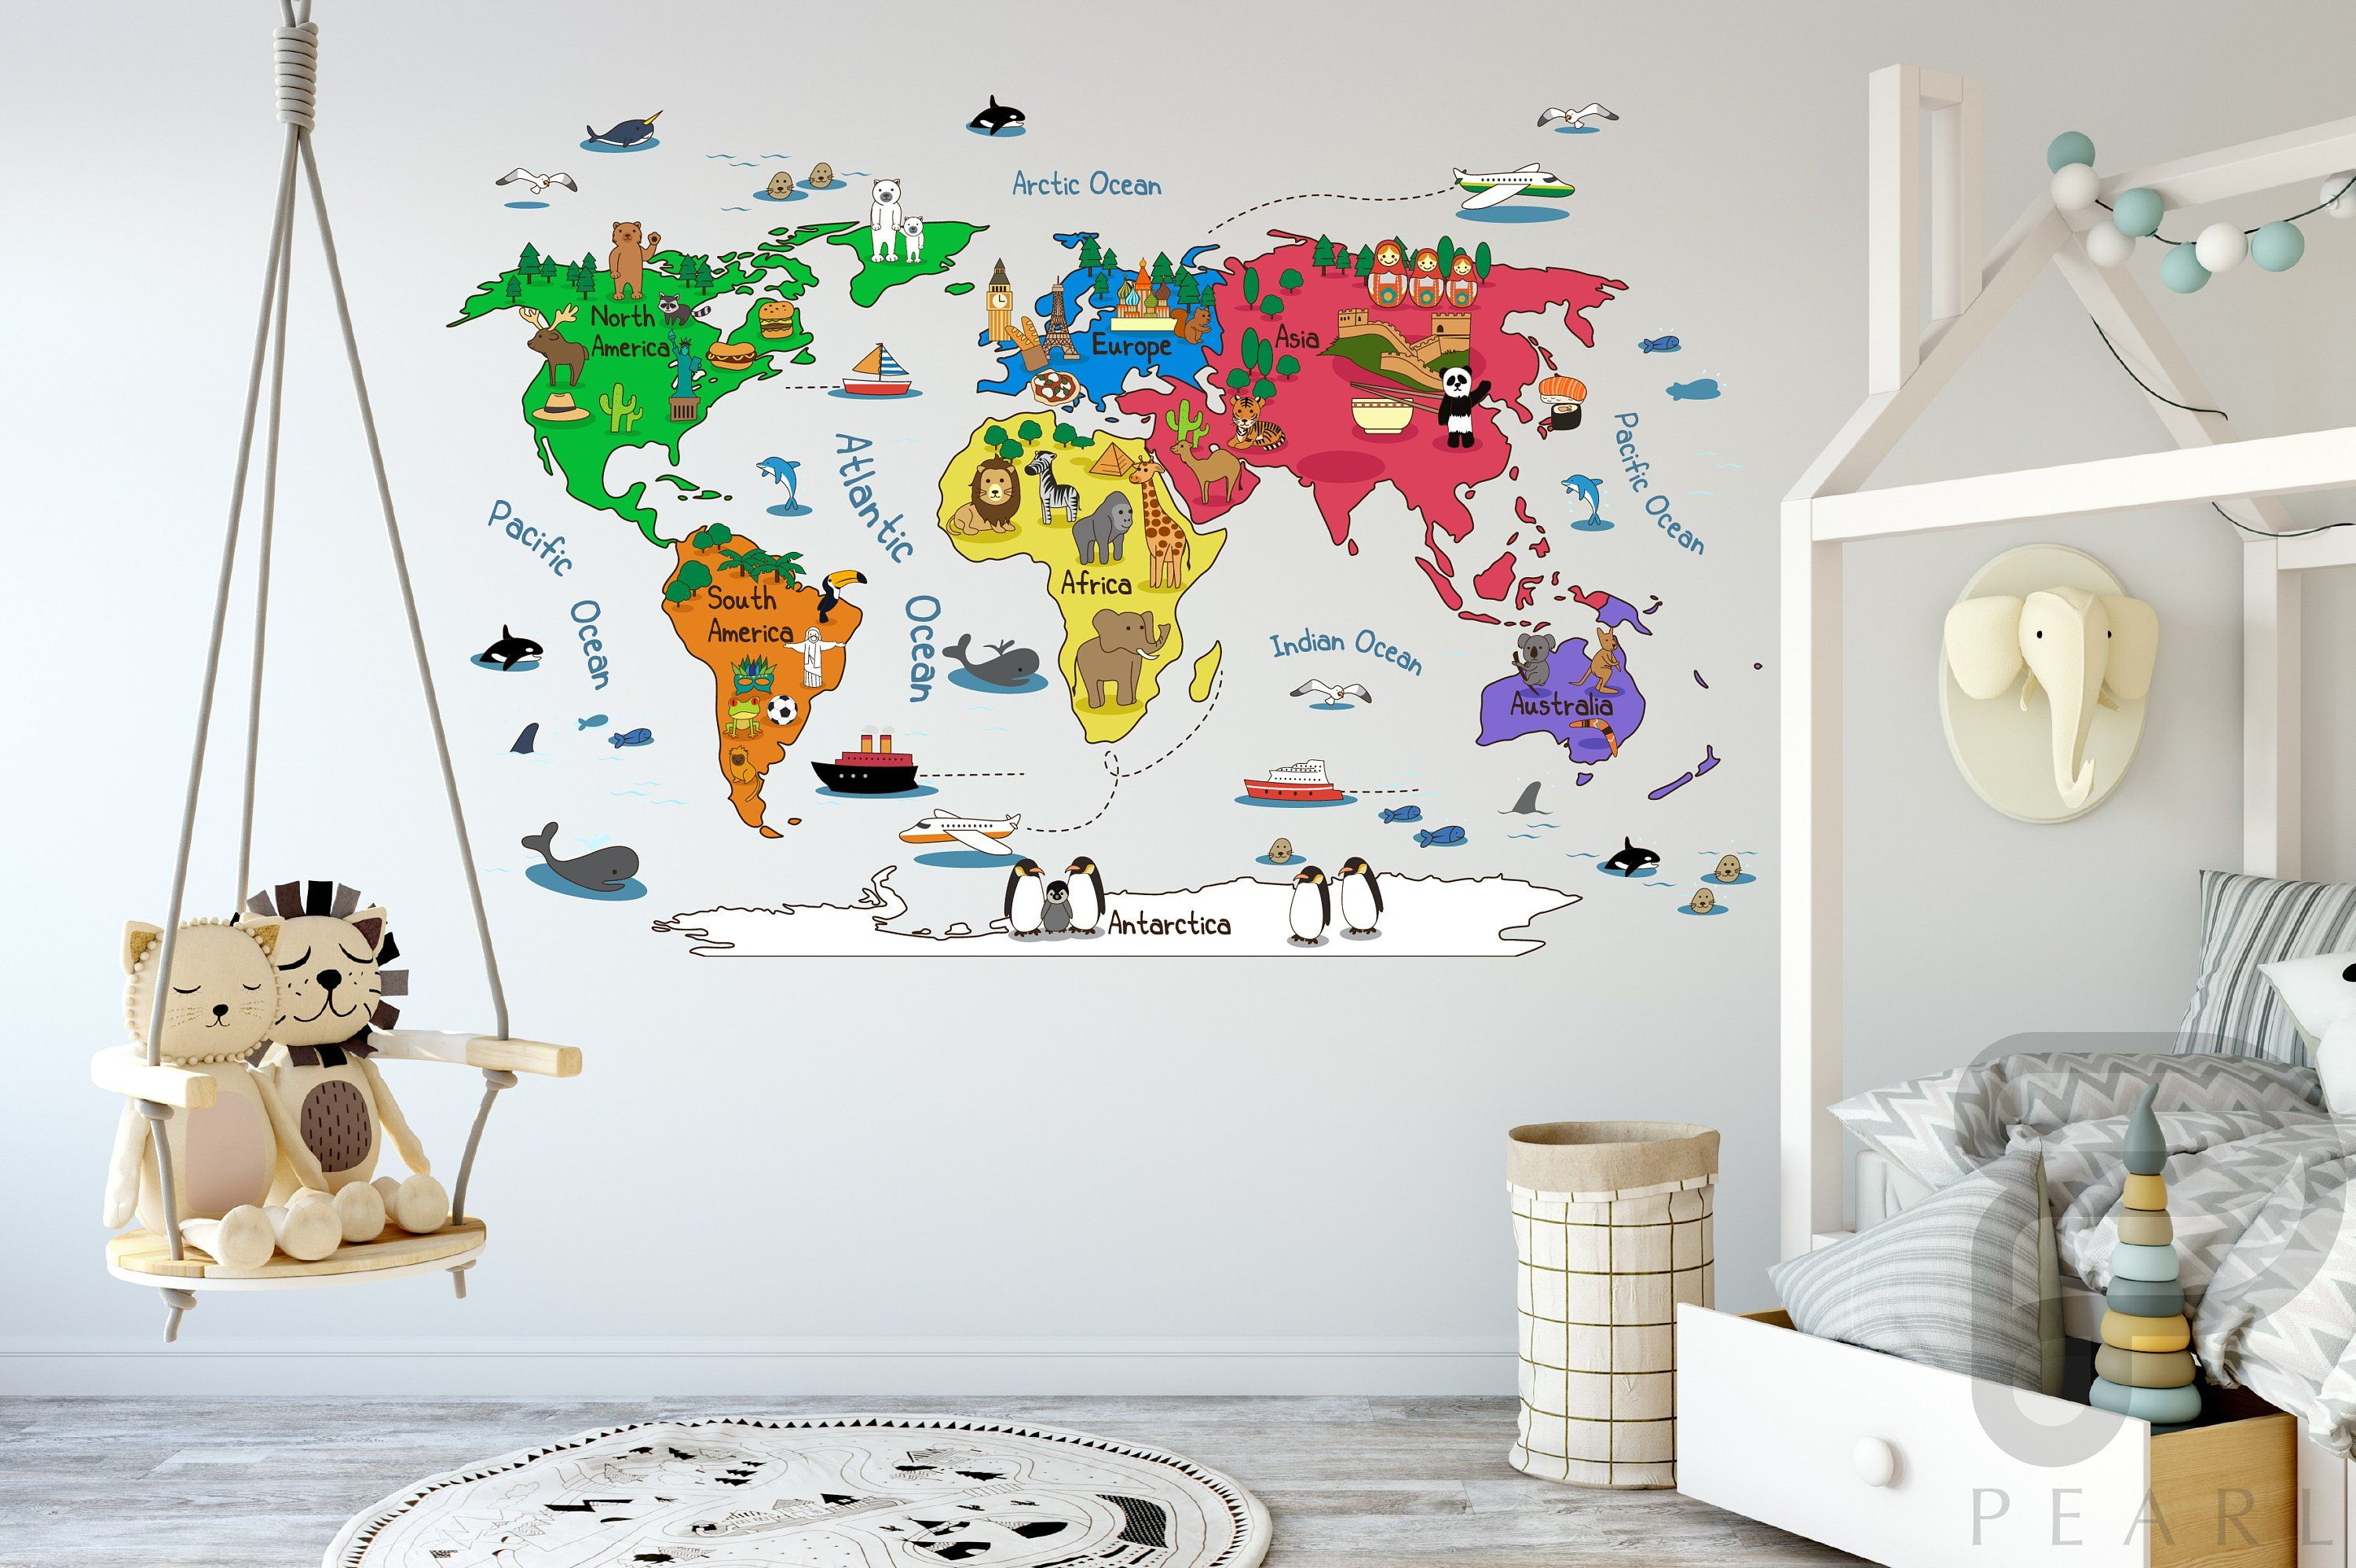 Wall Map Decal / Kids World Map / l and Stick in 2019 | Wall ... Kids World Map Wall Sticker on world map wall set, world map of the wall, india wall sticker, world vinyl art decals, world wall decal, world map wall graphics, world map on wall, world wall sculpture, calendar wall sticker, world maps for your wall, world map wall vinyl, world map removable sticker, world map wall paint, world watch urban outfitters, compass wall sticker, world map wall canvas, world map wall covering, world map wall decoration, paris eiffel tower wall sticker, world map wall mural,